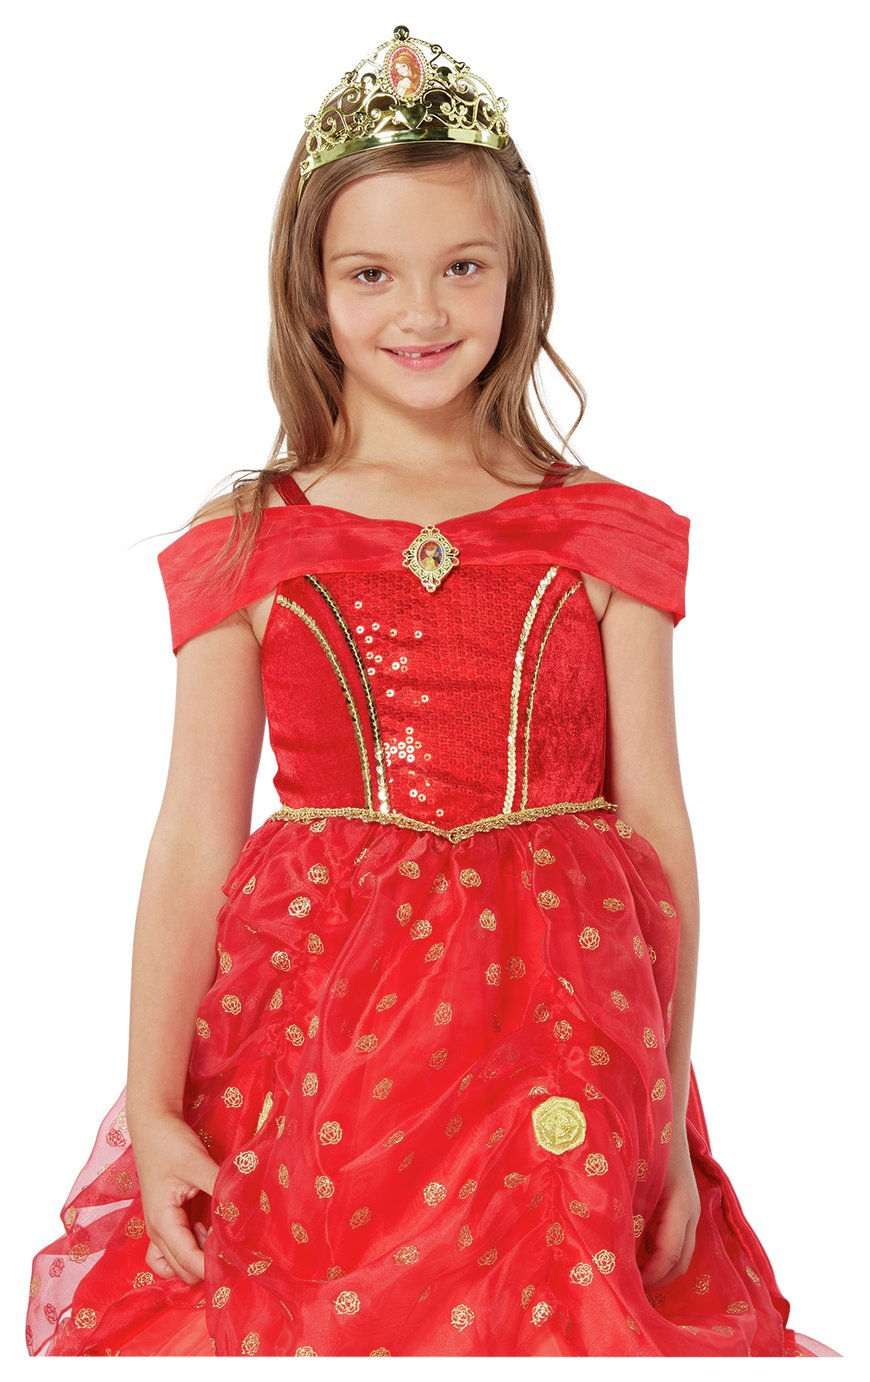 Disney Princess Belle Fancy Dress Costume - 5-6 Years